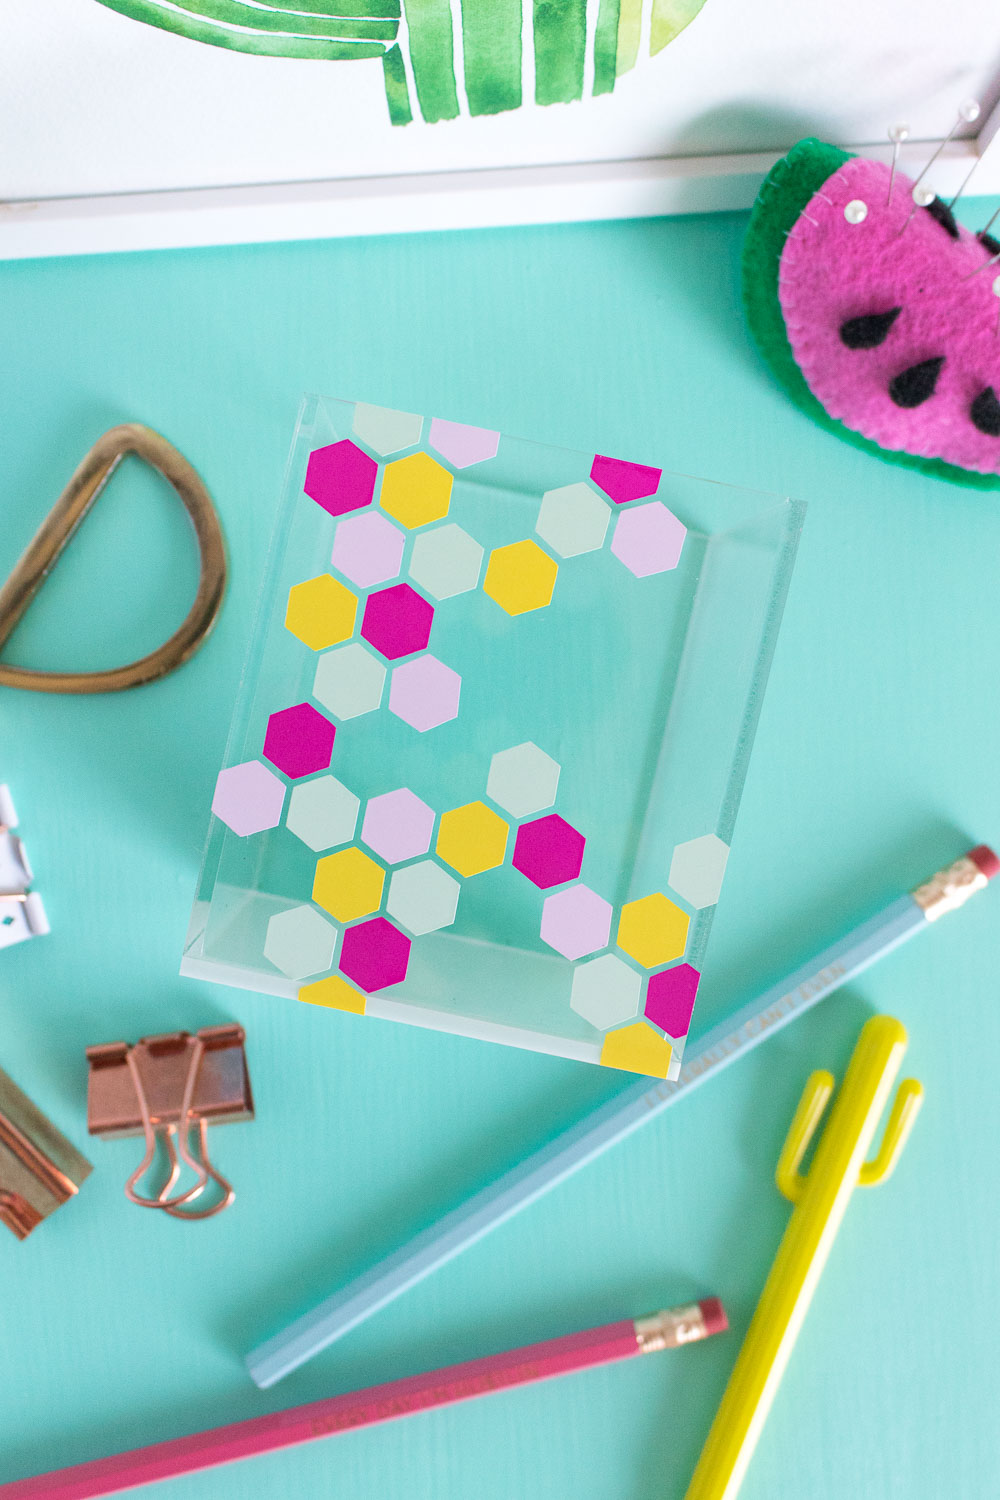 DIY Honeycomb Acrylic Organizer for your Desktop | Club Crafted